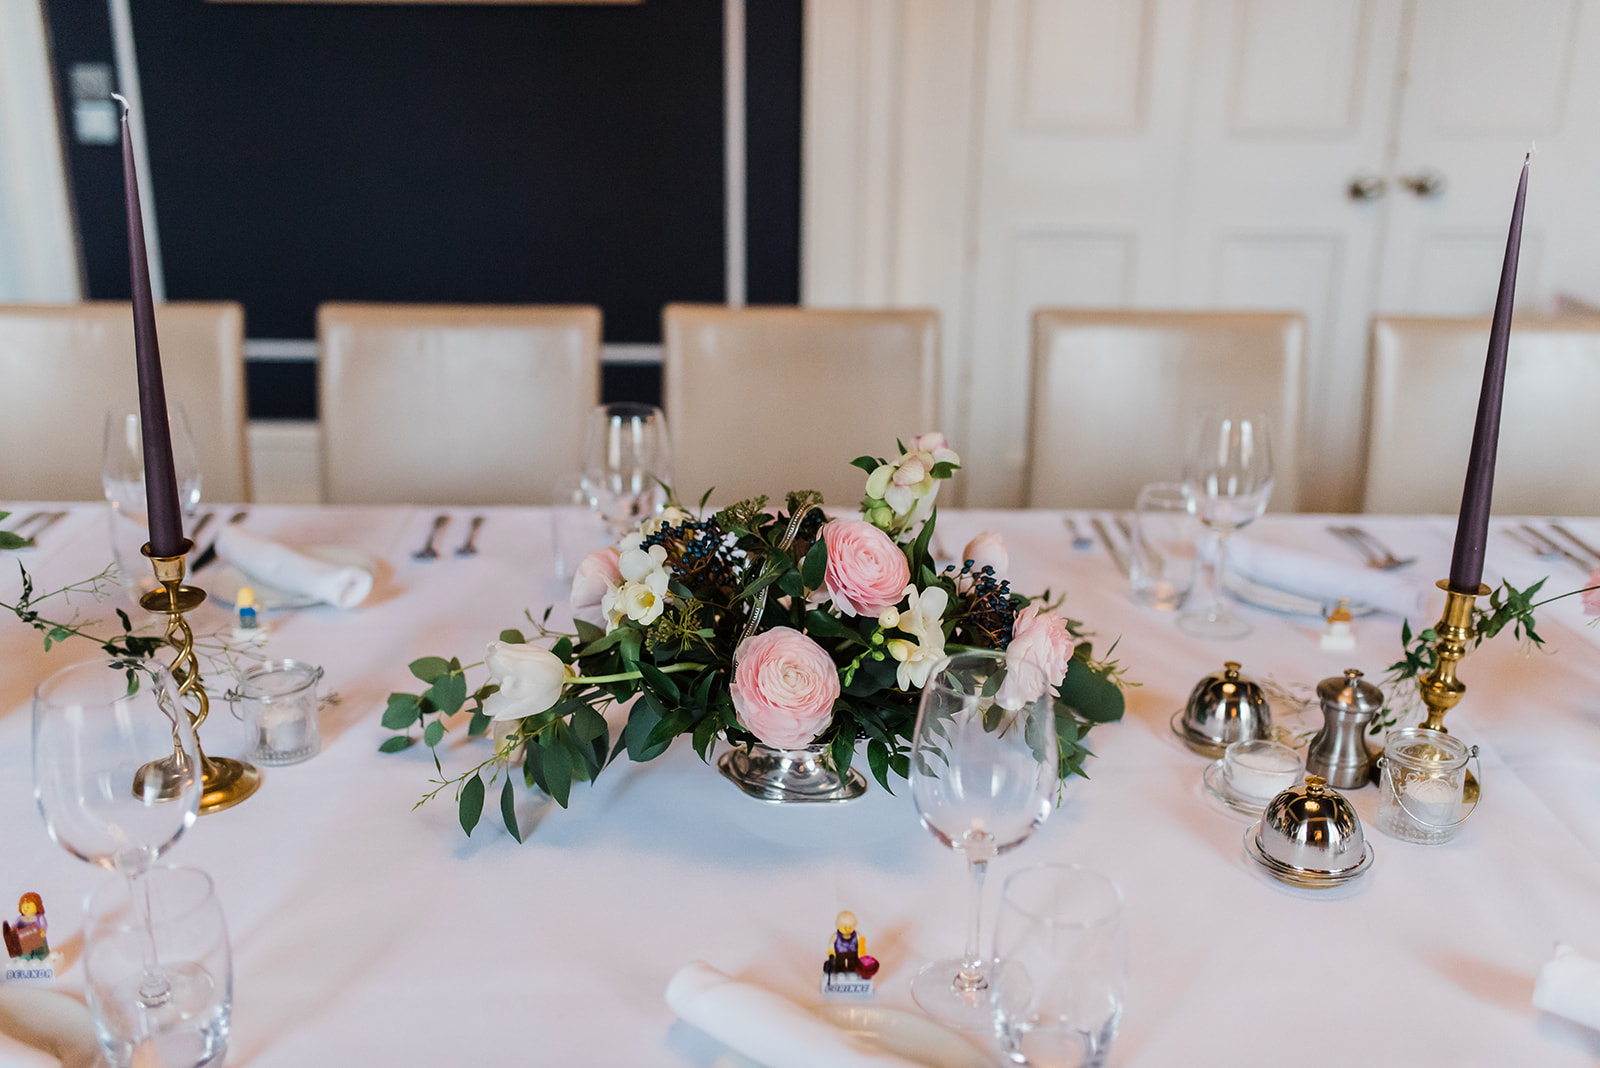 Pink floral centrepiece on table